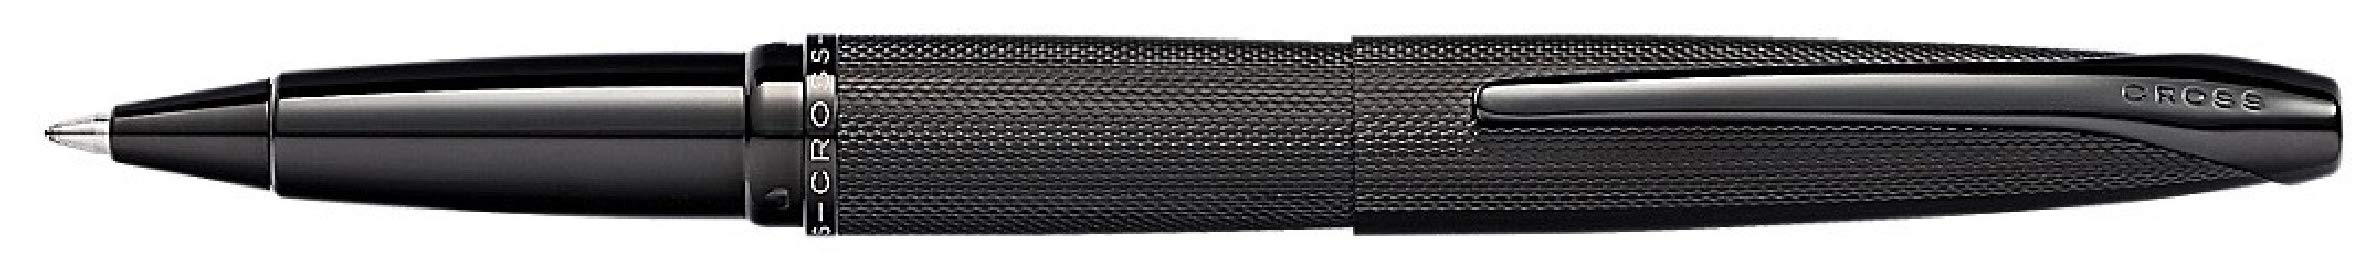 Cross ATX Brushed Black PVD Selectip Rollerball Pen with Etched Diamond Pattern by Cross (Image #1)